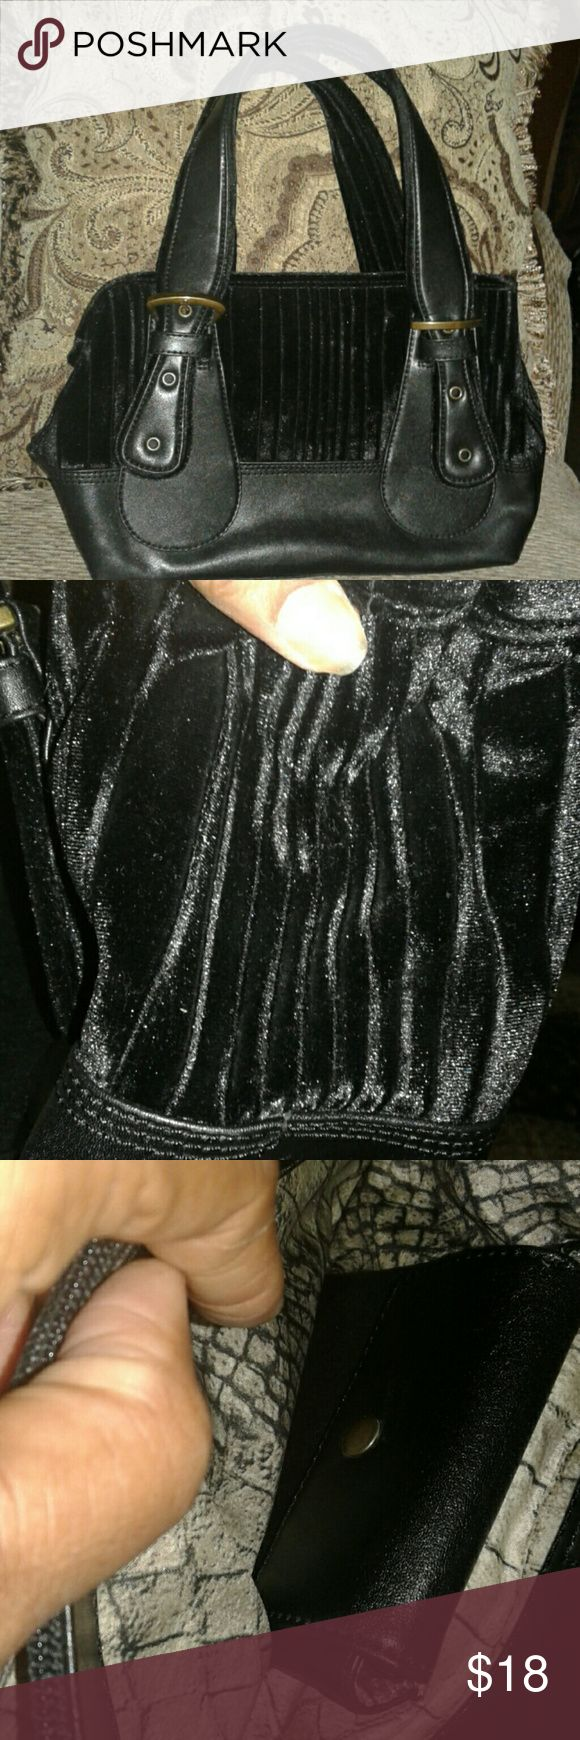 """Black Velvet and Vinyl Satchel Nice bag with velvet top and under handles. Brass colored buckles. Footed. Inside zippered pocket and vinyl pouch. Centered zippered section. Appx 8 x 11 x 5 with 7"""" drop. Slight tarnish on buckles see pic. Otherwise in great conditin. No stains no tears. MX Bags Satchels"""